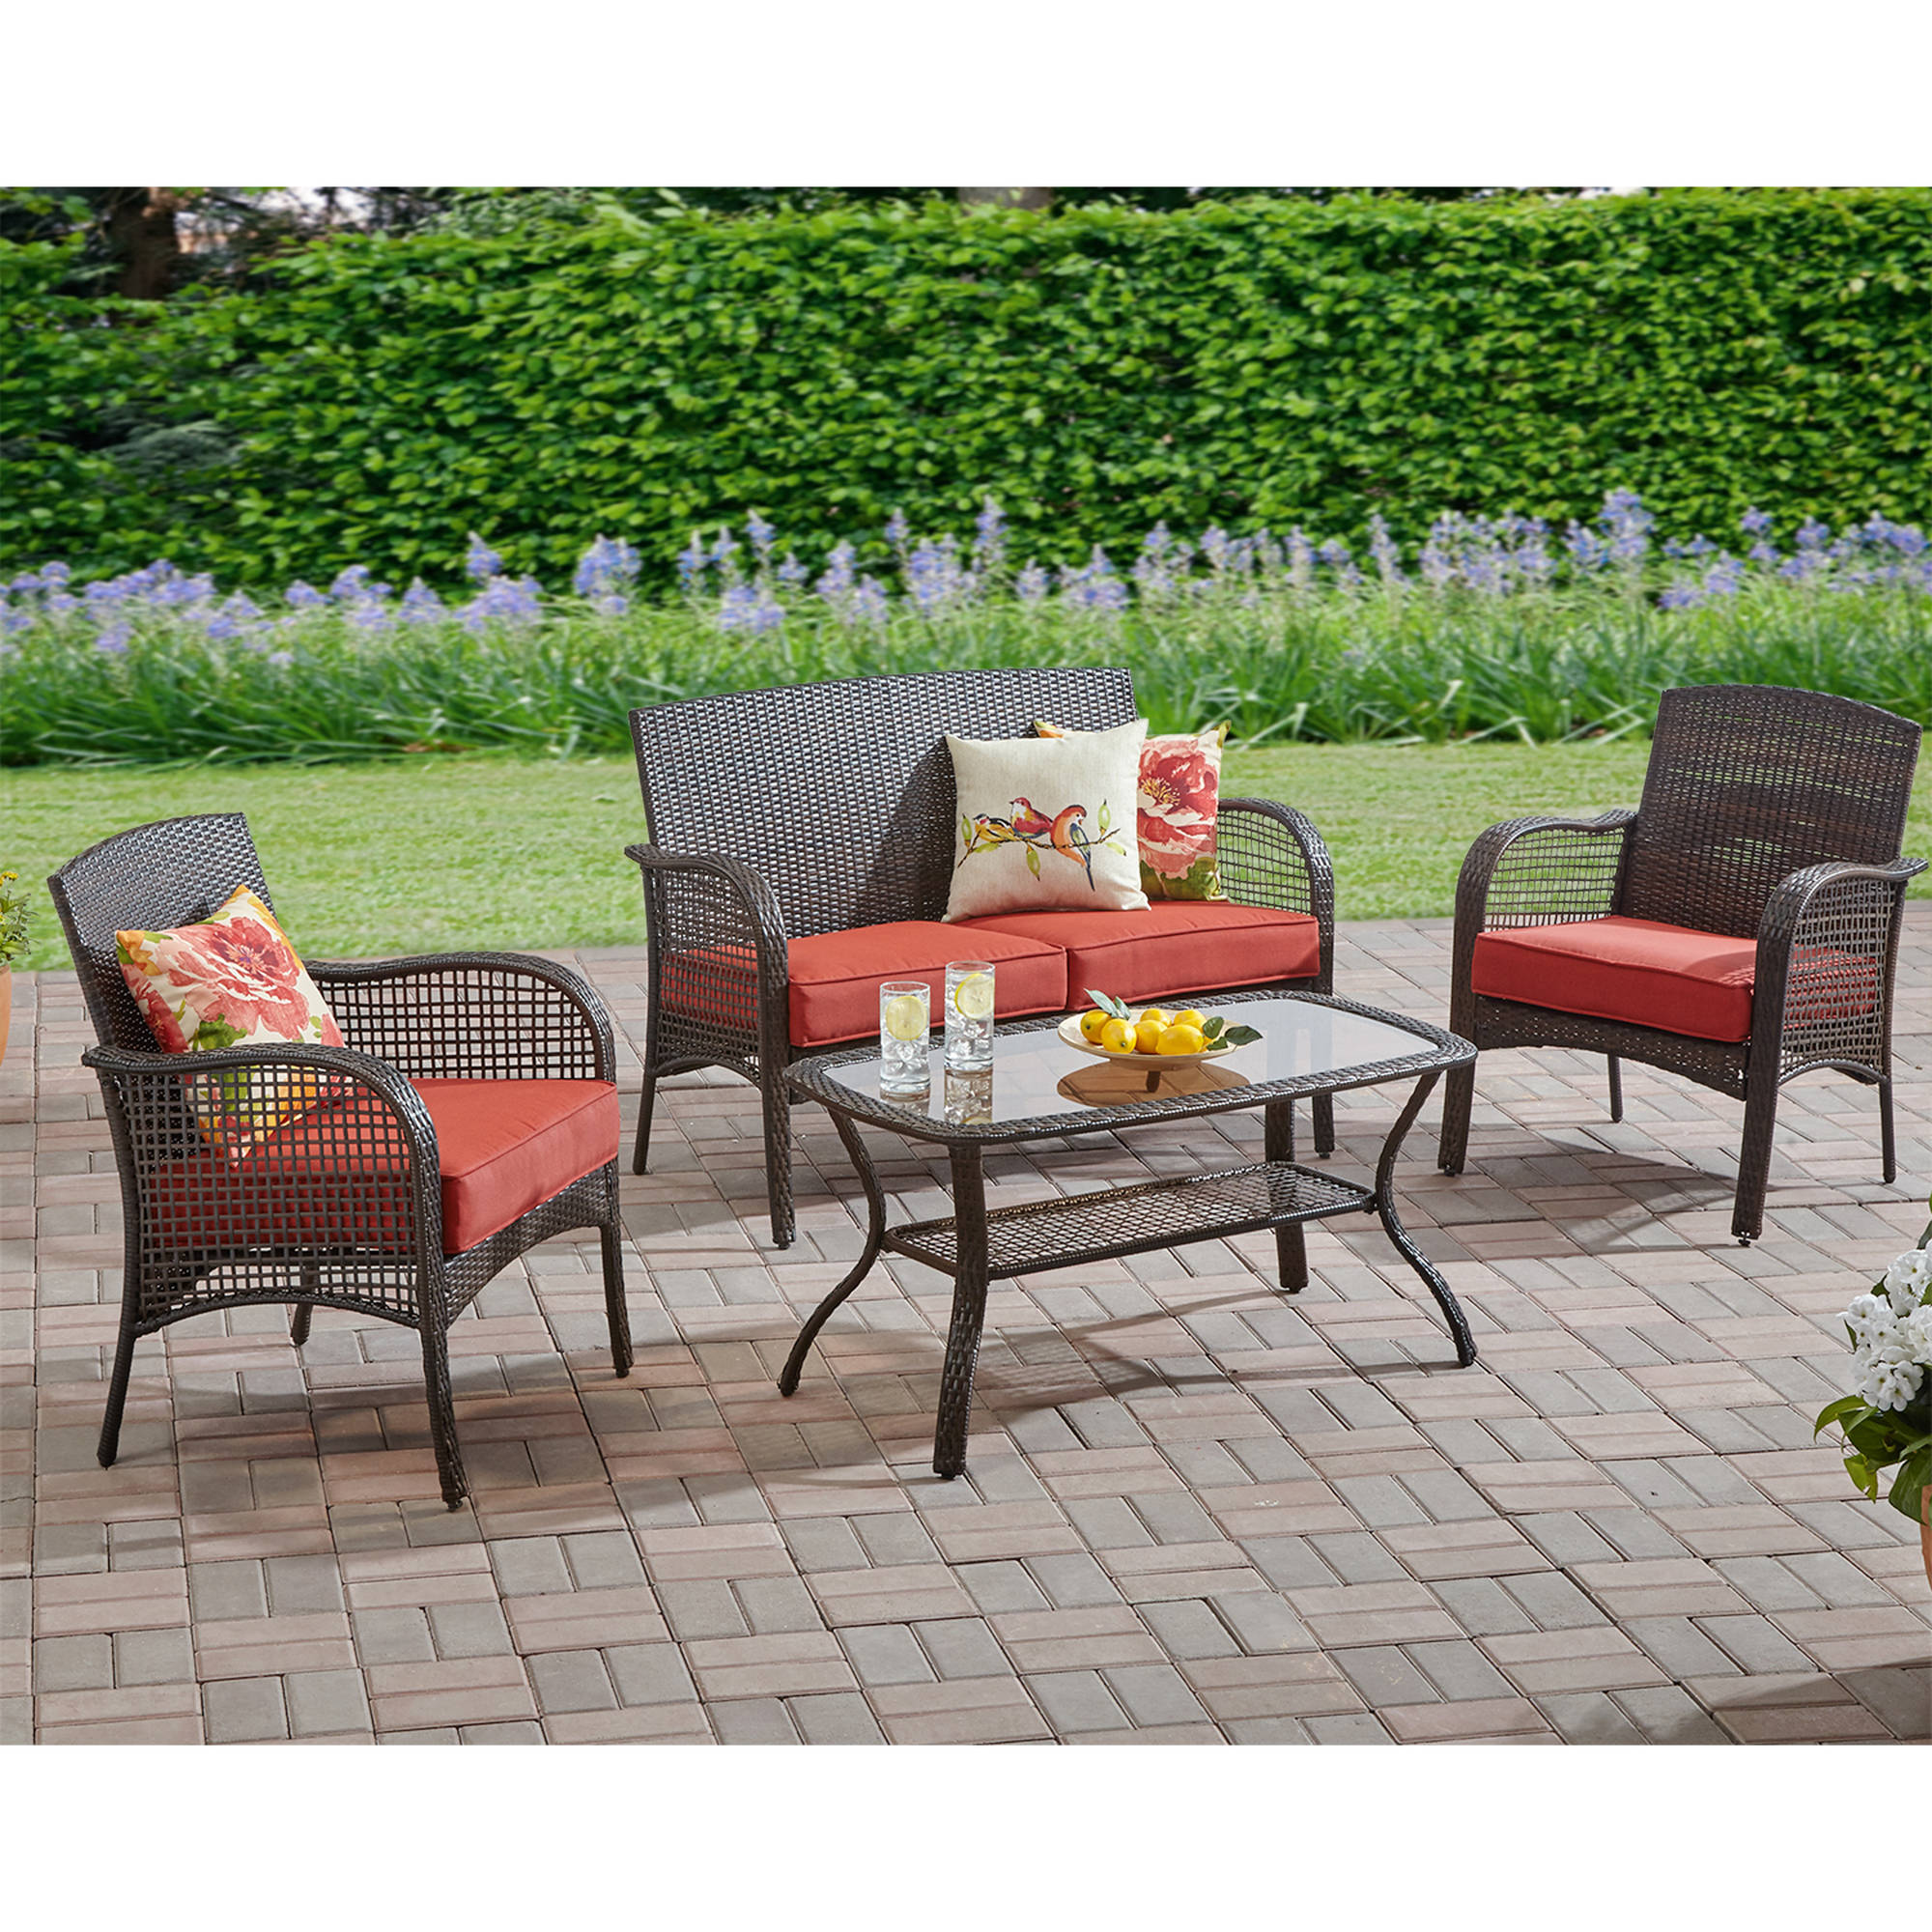 Delightful Mainstays Cambridge Park 4 Piece Outdoor Conversation Set, Seats 4    Walmart.com